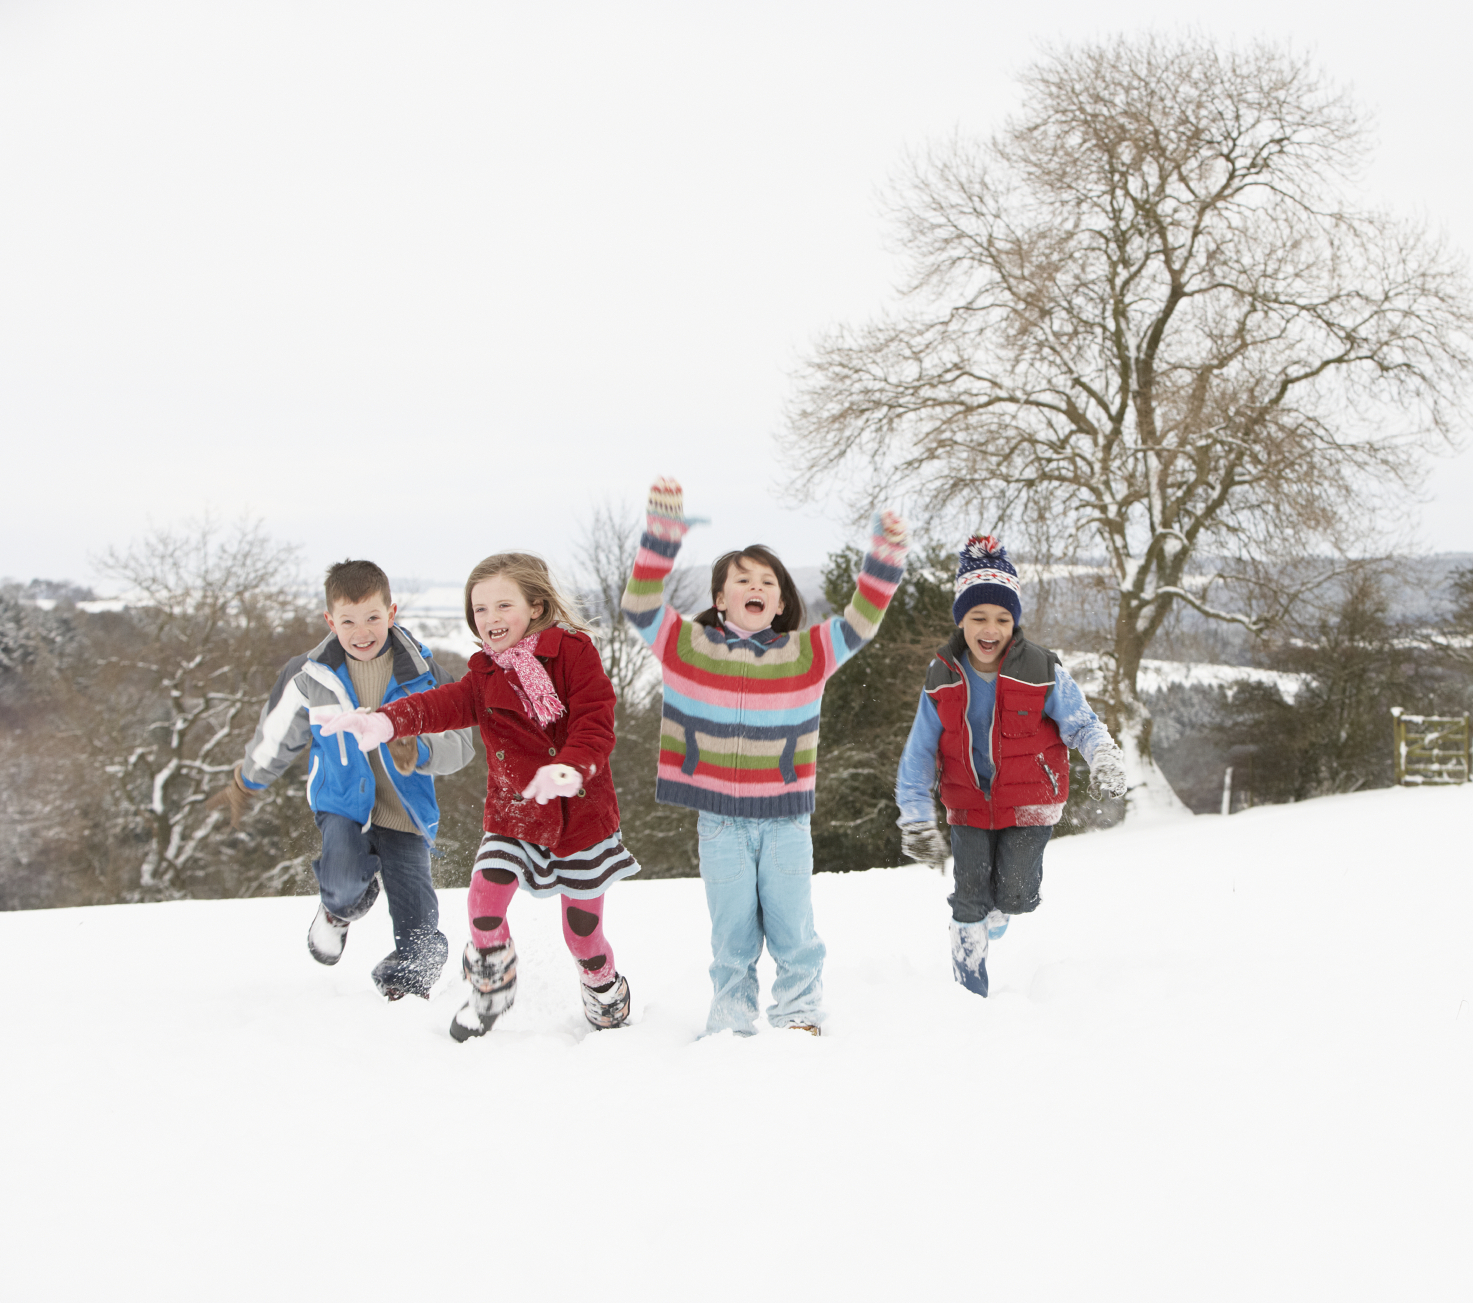 Winter and holiday active play ideas